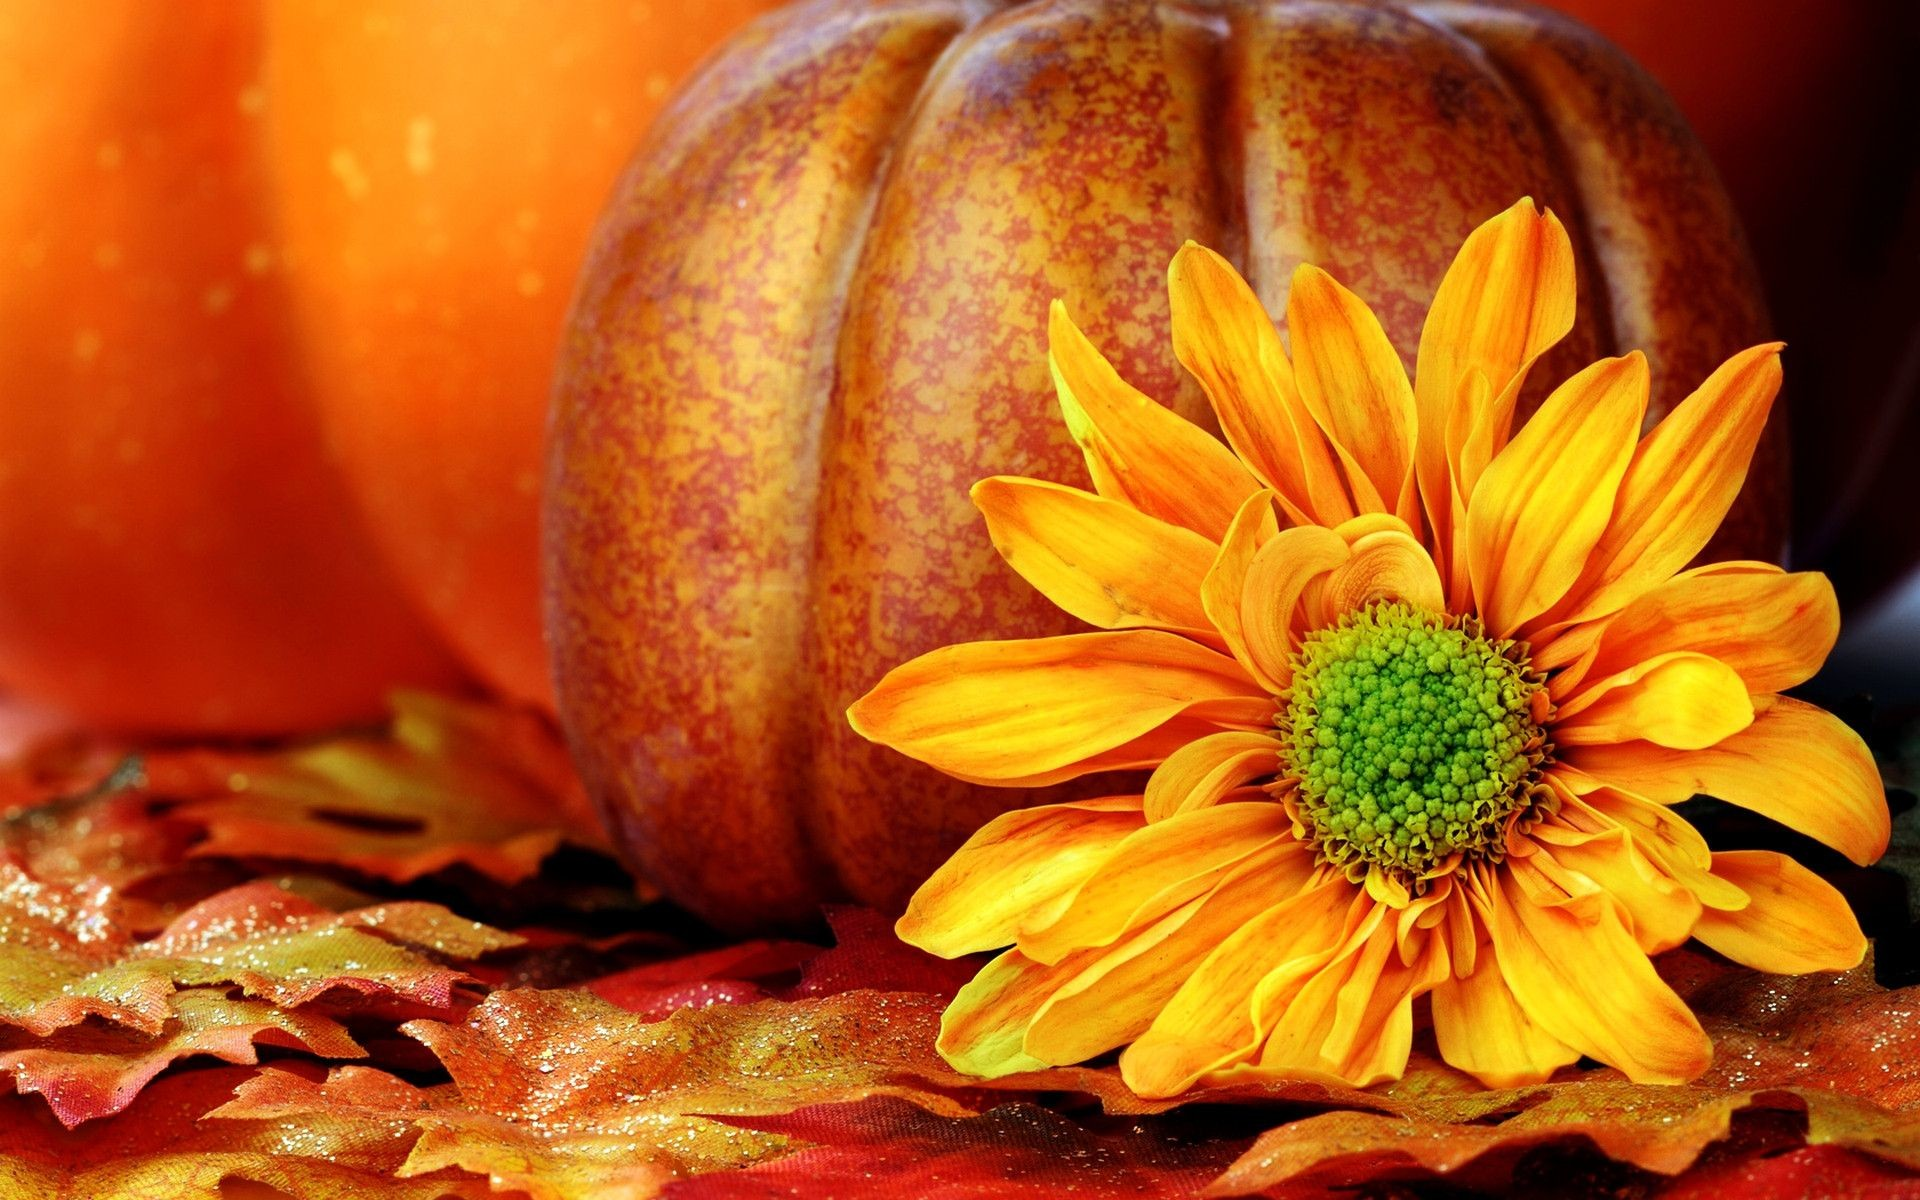 Free Desktop HD Pumpkin Wallpapers.